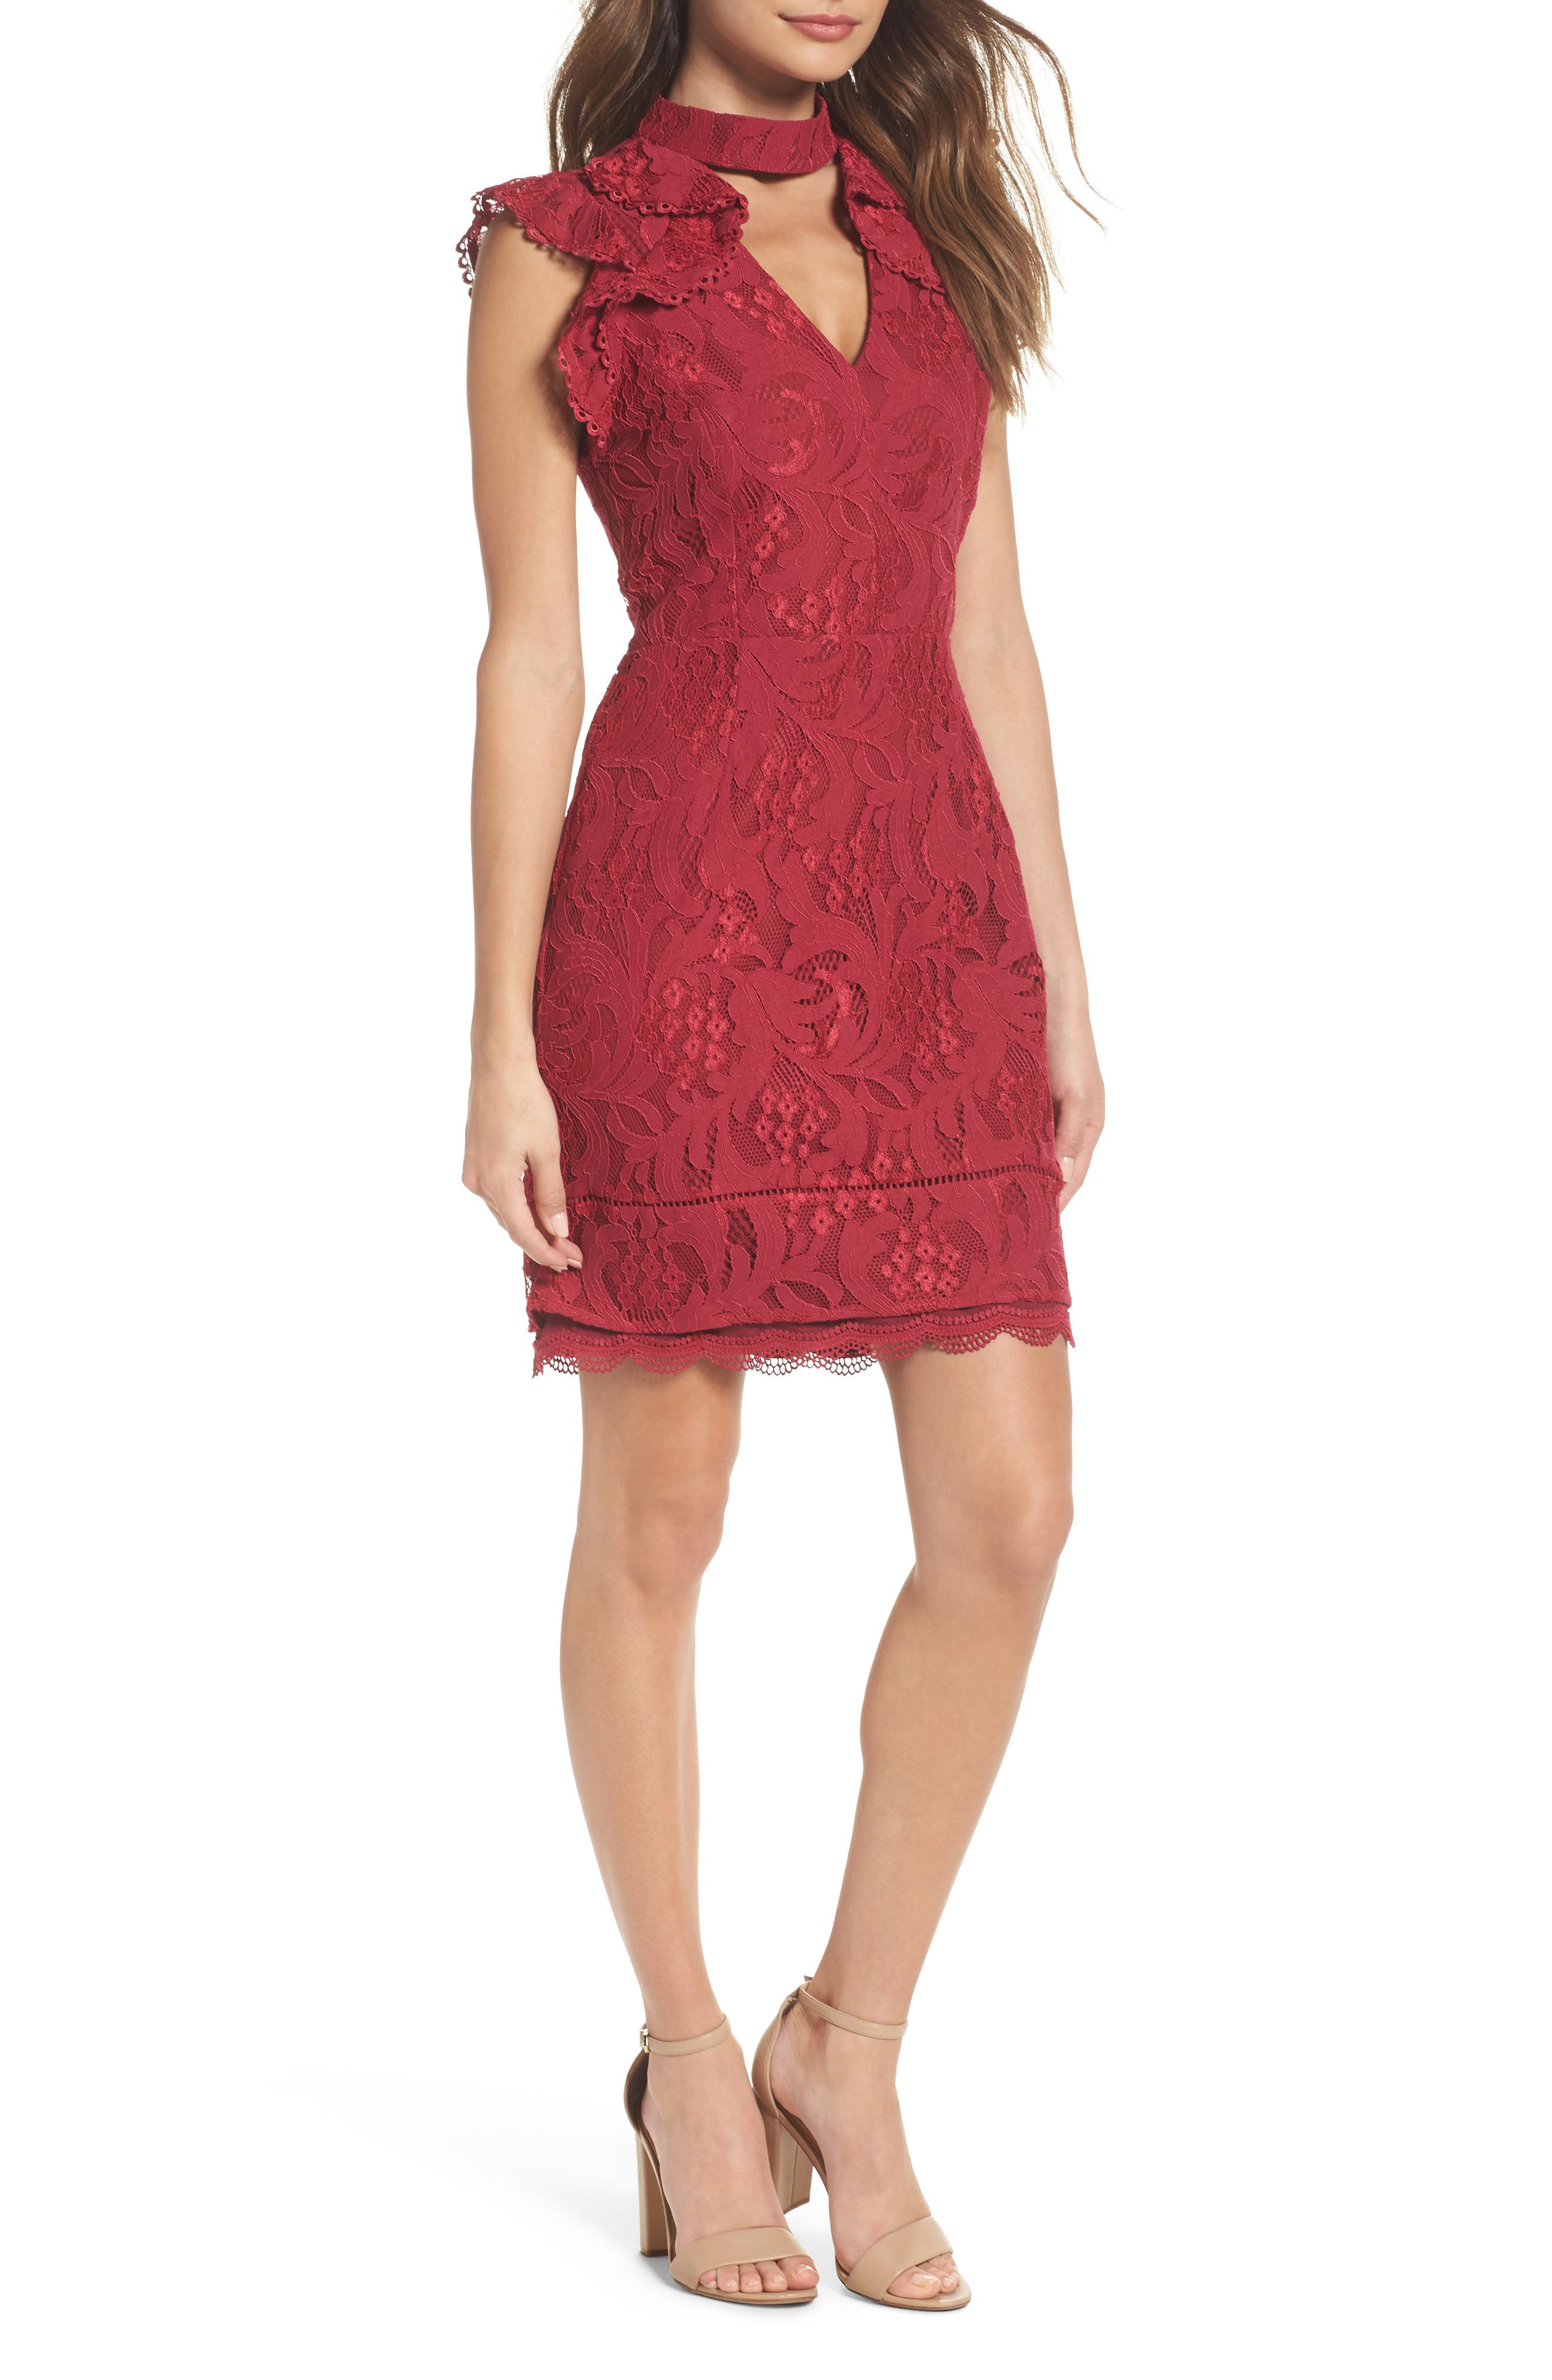 Adelyn Rae Delilah Lace Sheath Dress